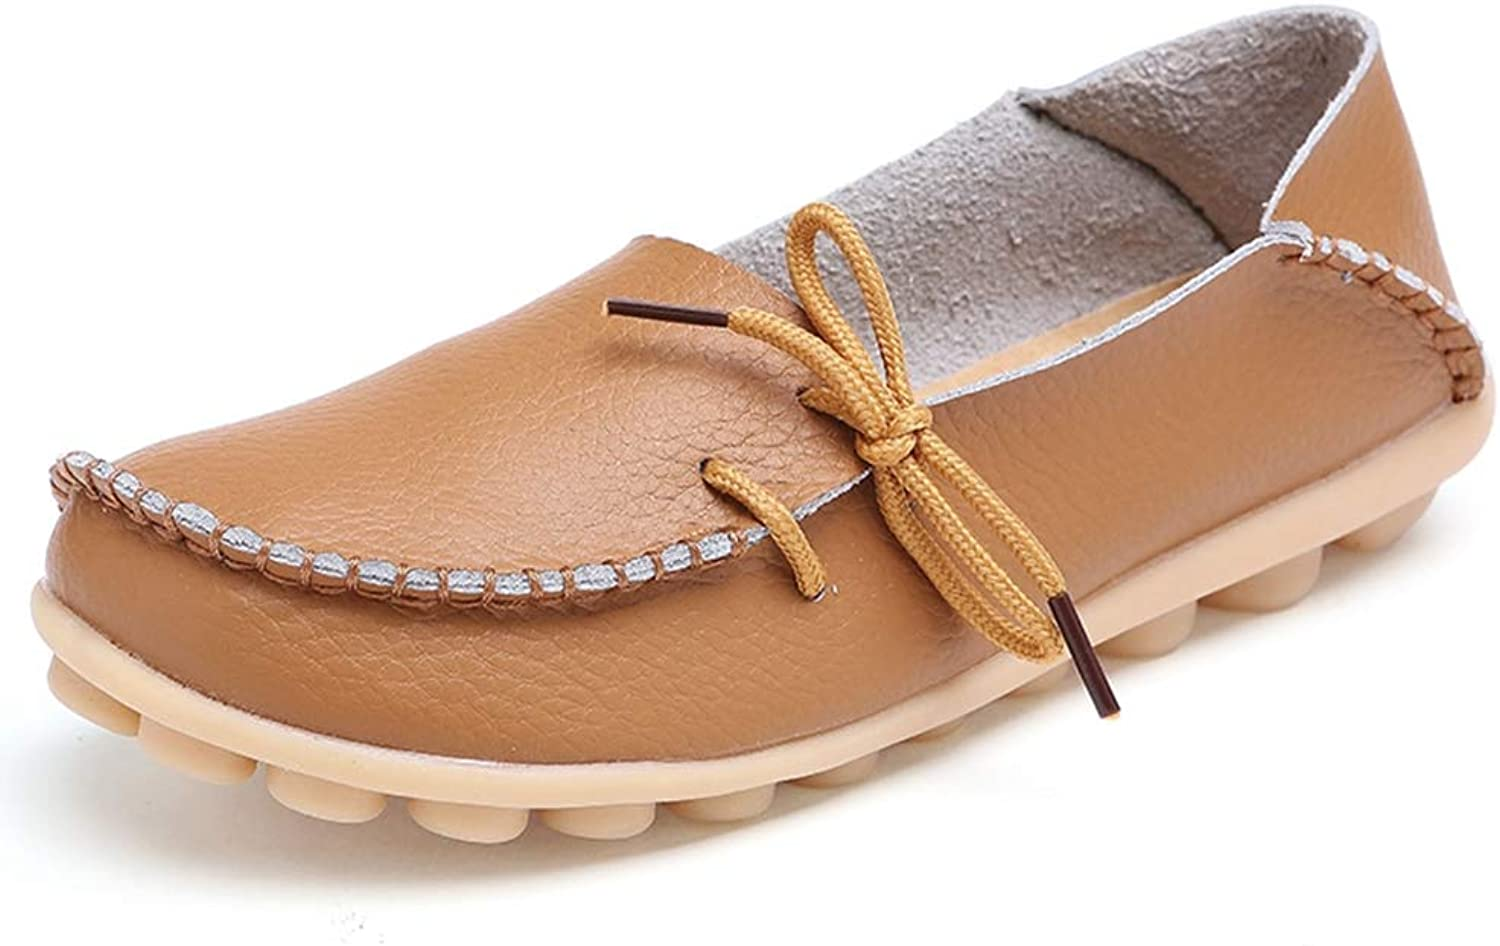 T-JULY Women Genuine Leather Flat shoes Woman Slip On Loafers Comfy Ballet shoes Round Toe Female Breathable Moccasins